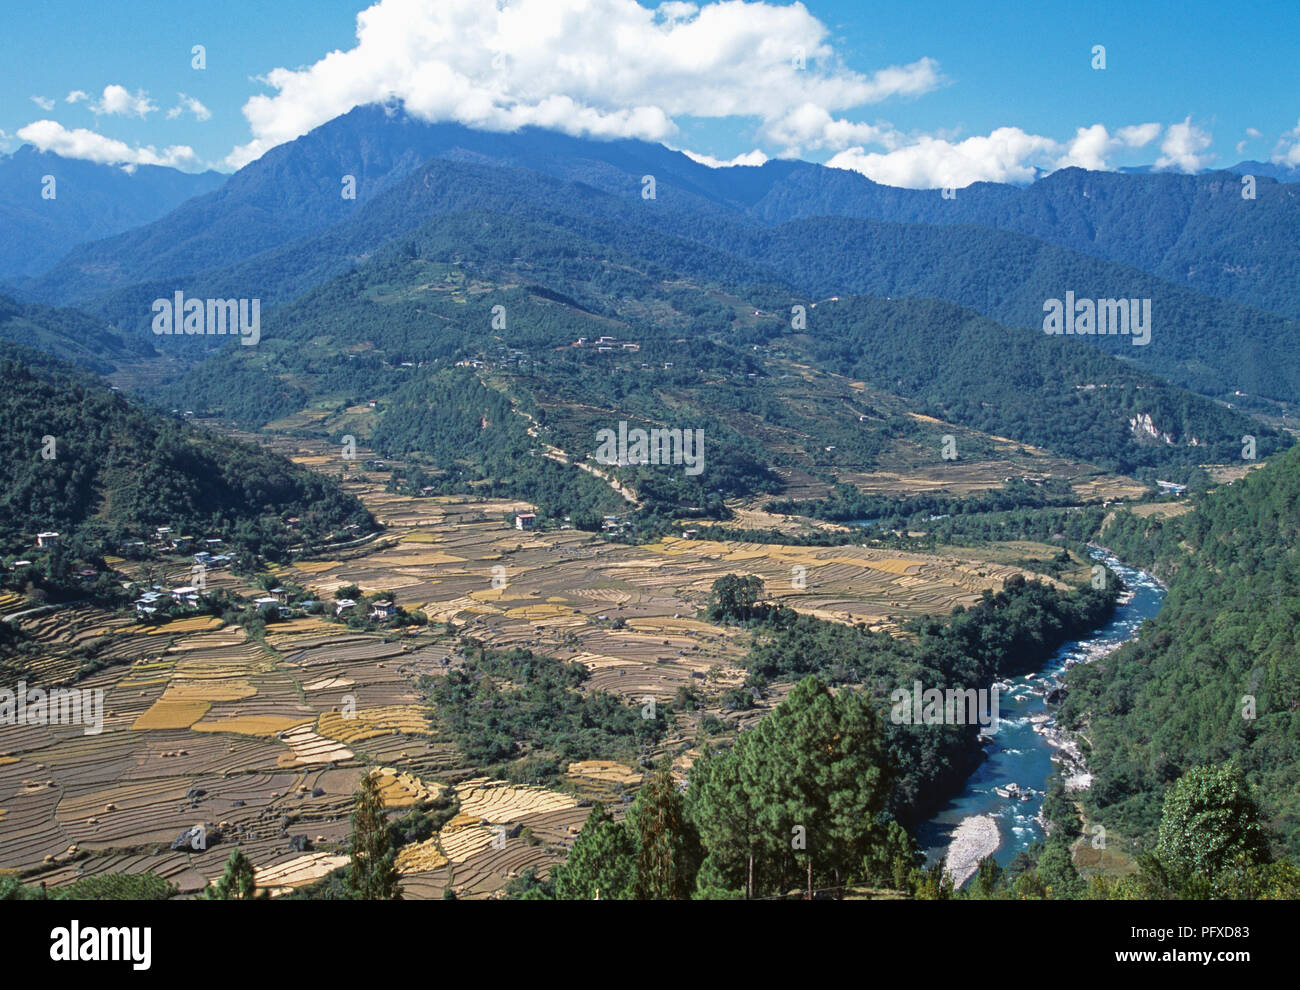 View of rice terraces in Mo Chhu Valley in upper Punakha valley, Bhutan - Stock Image